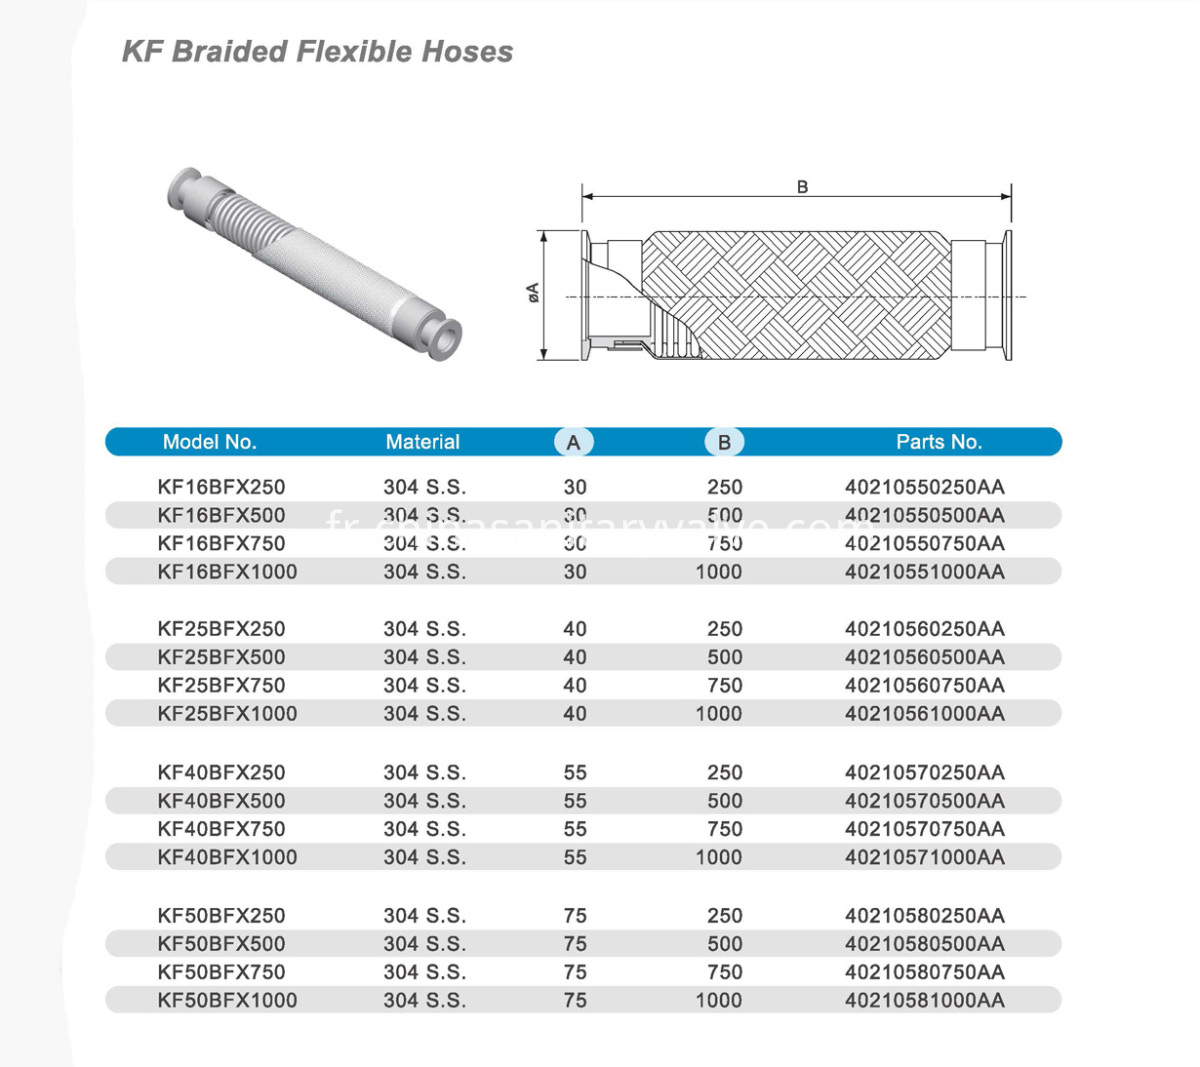 KF Baided Flexible Hoses Drawings